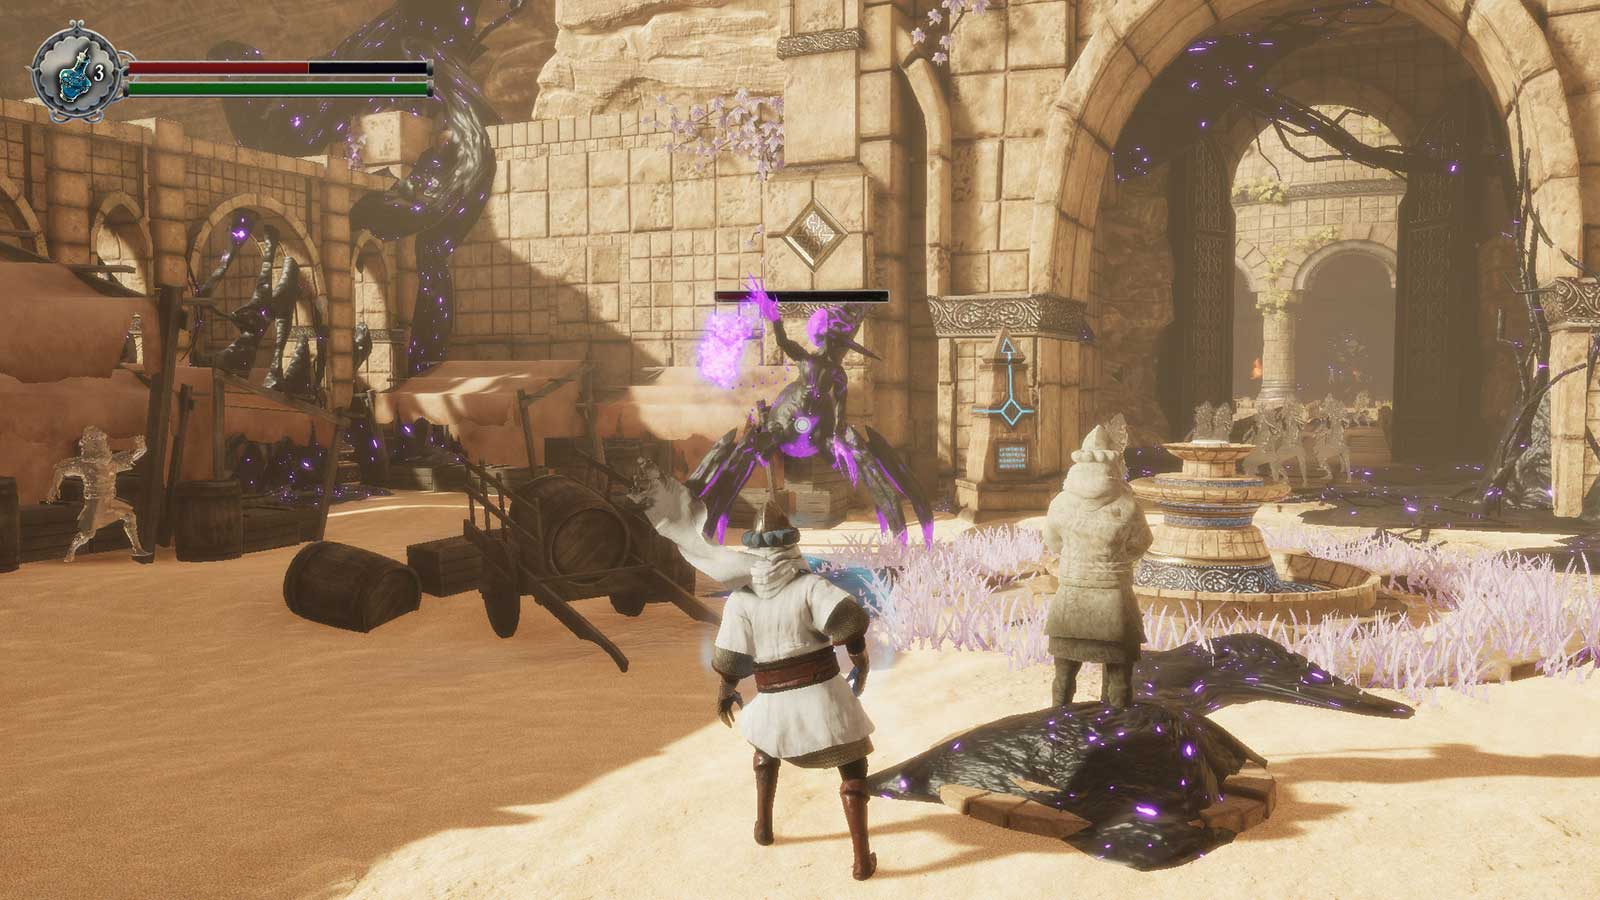 Warrior battles a giant scorpion monster in a sandy plaza